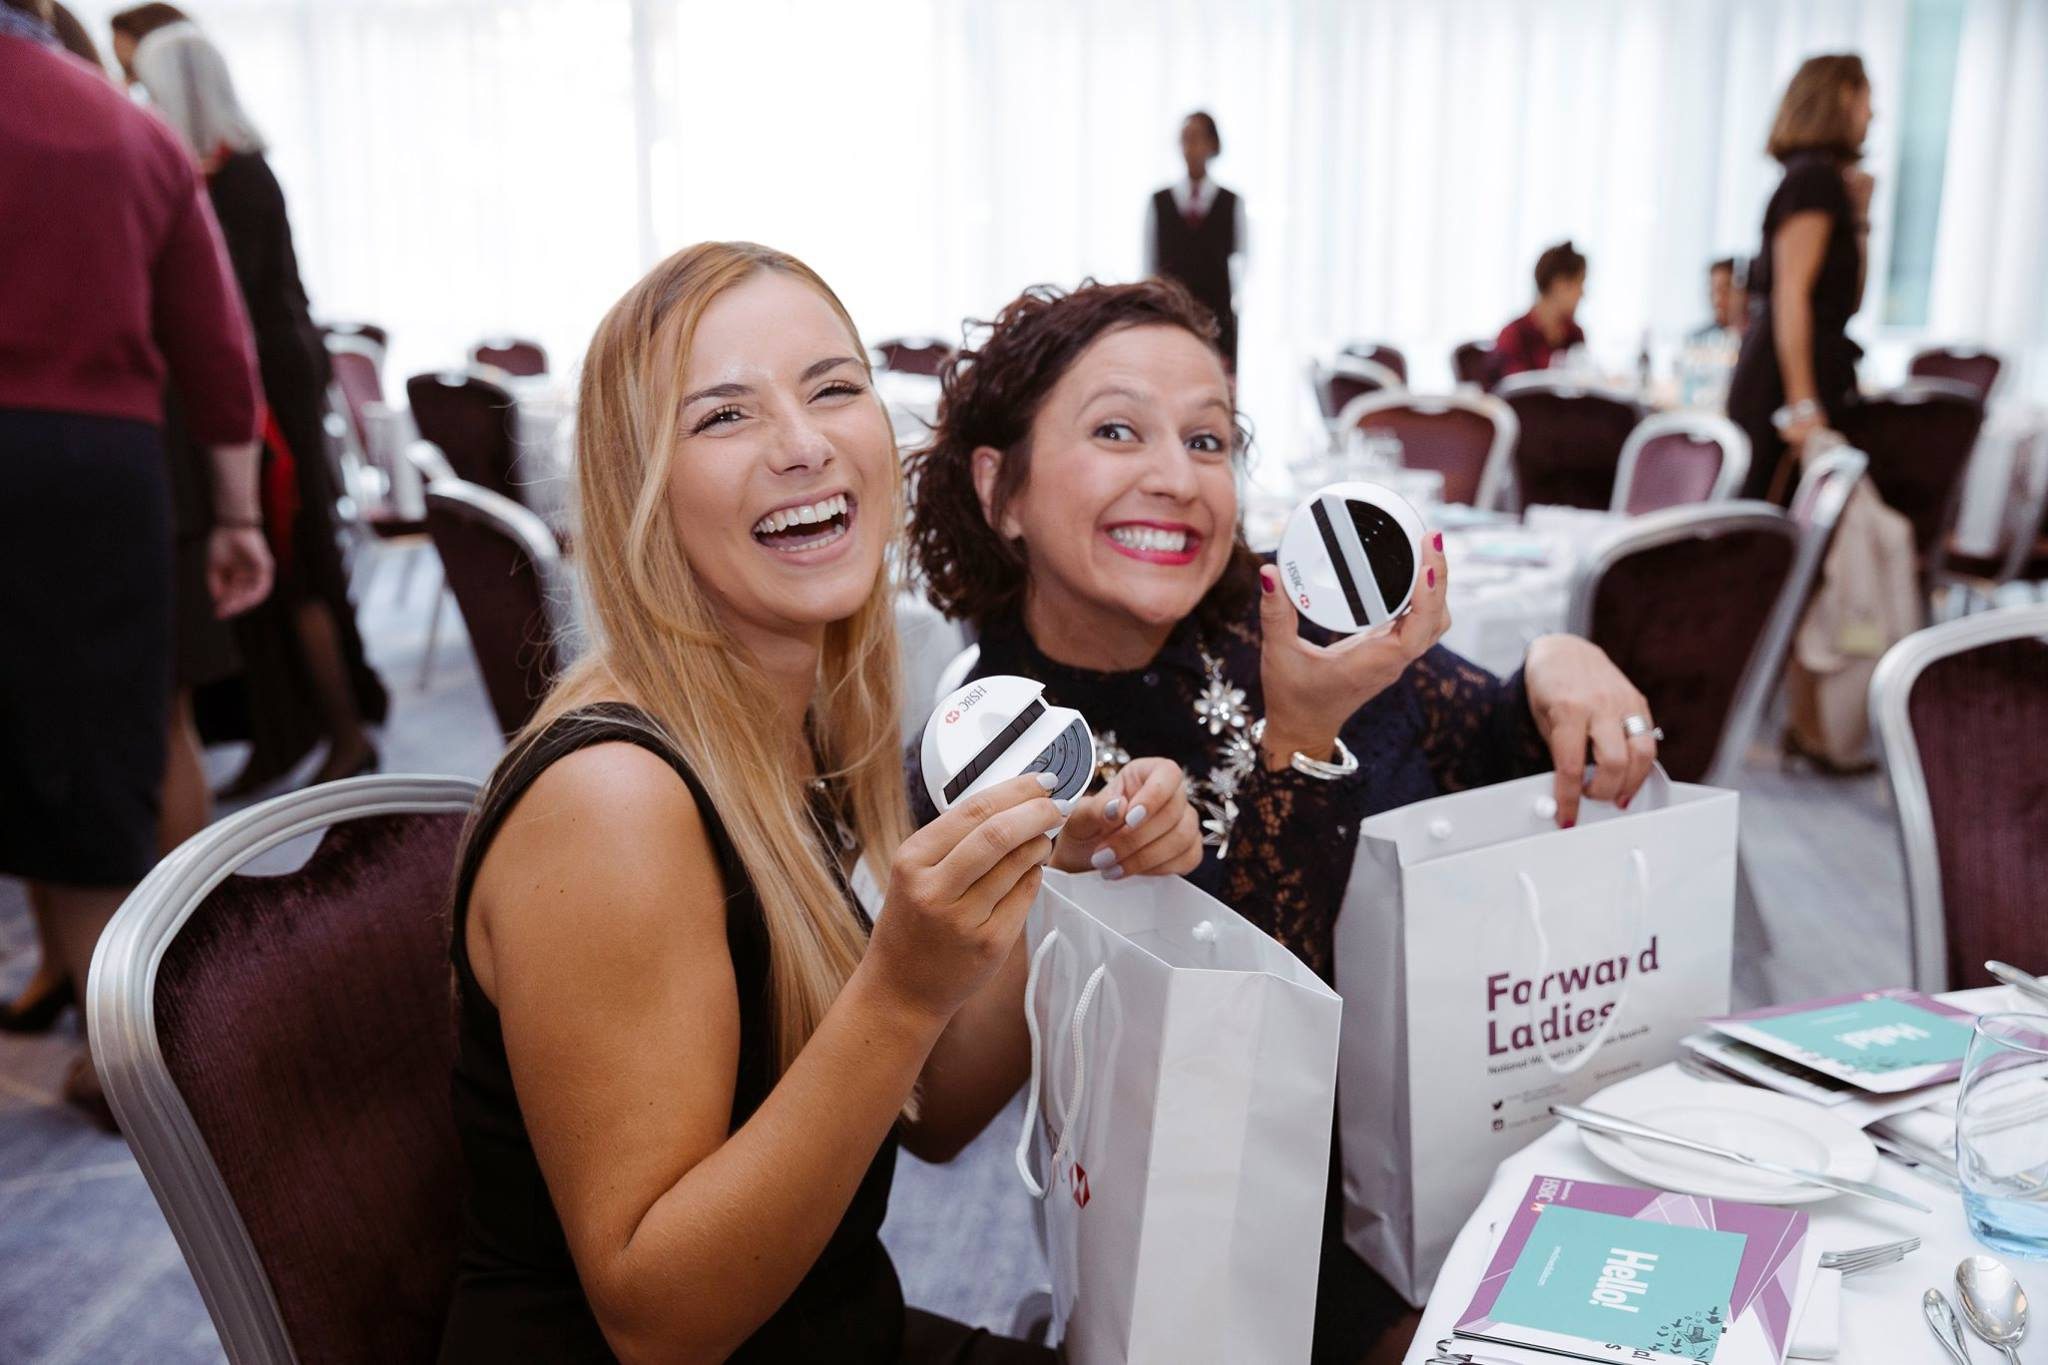 Forward Ladies goody bag happy faces